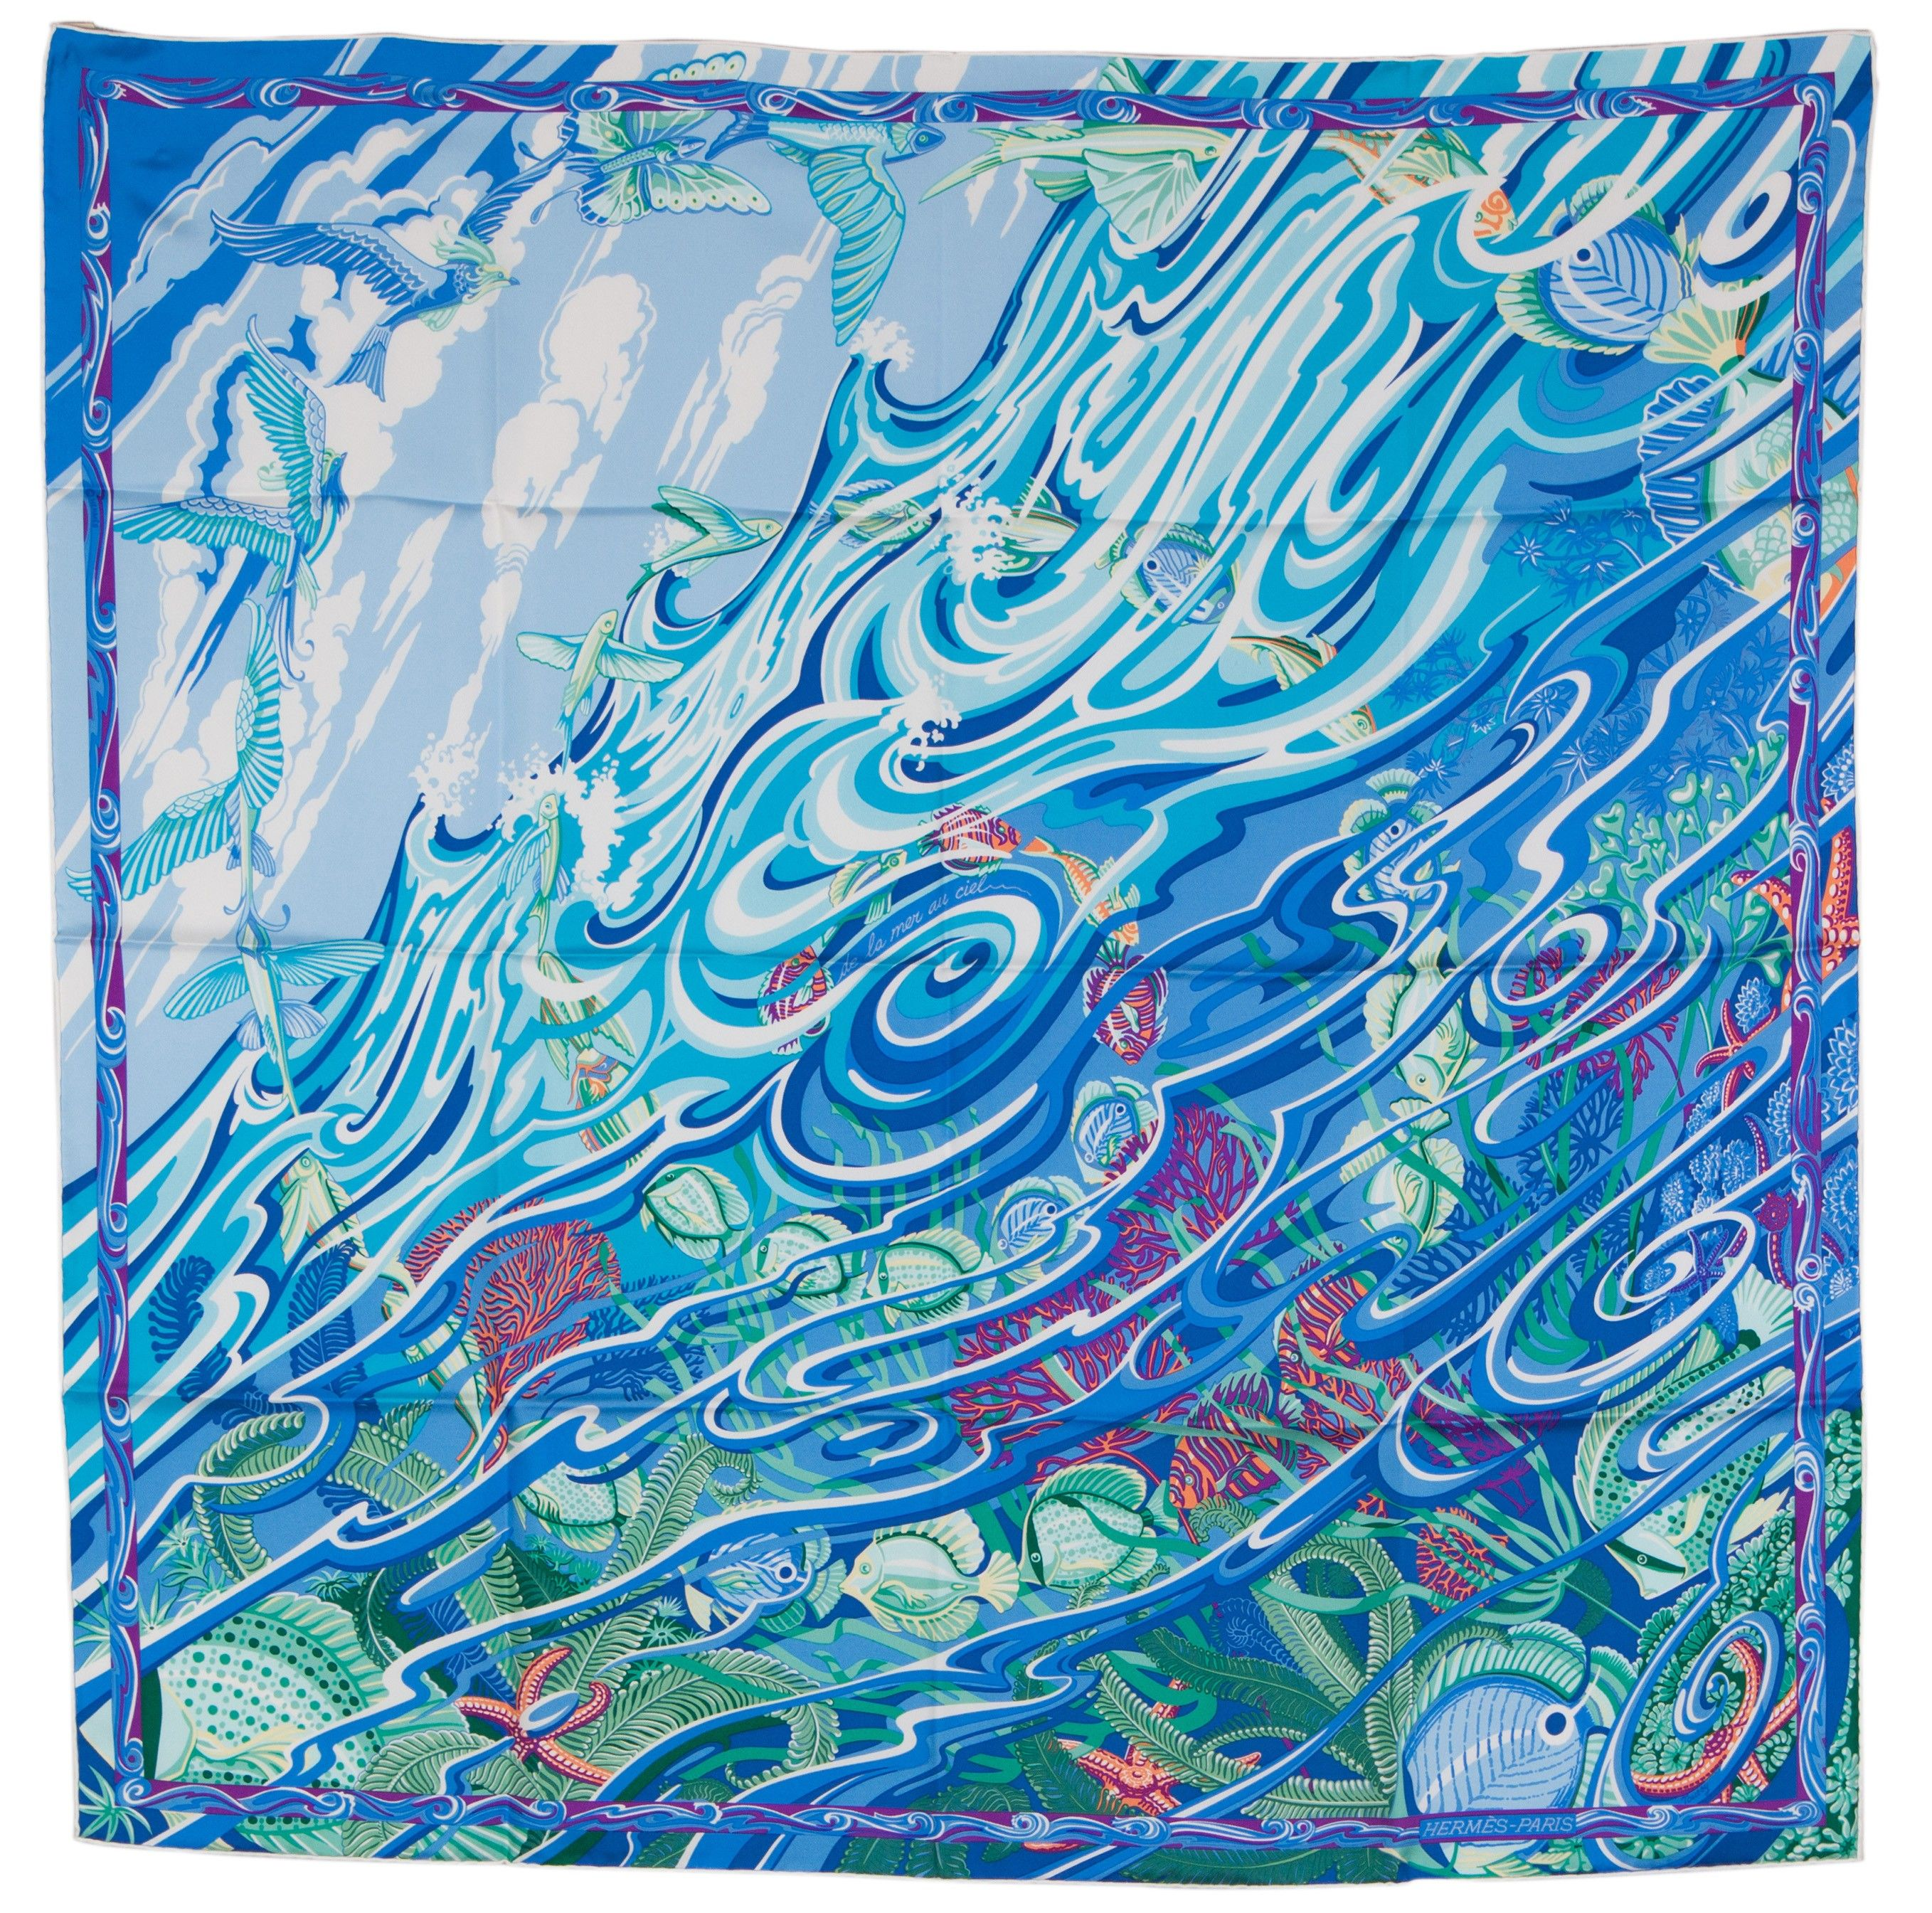 "Hermes ""De La Mer au Ciel"" in Blue Green 90cm Silk Scarf Carre by"